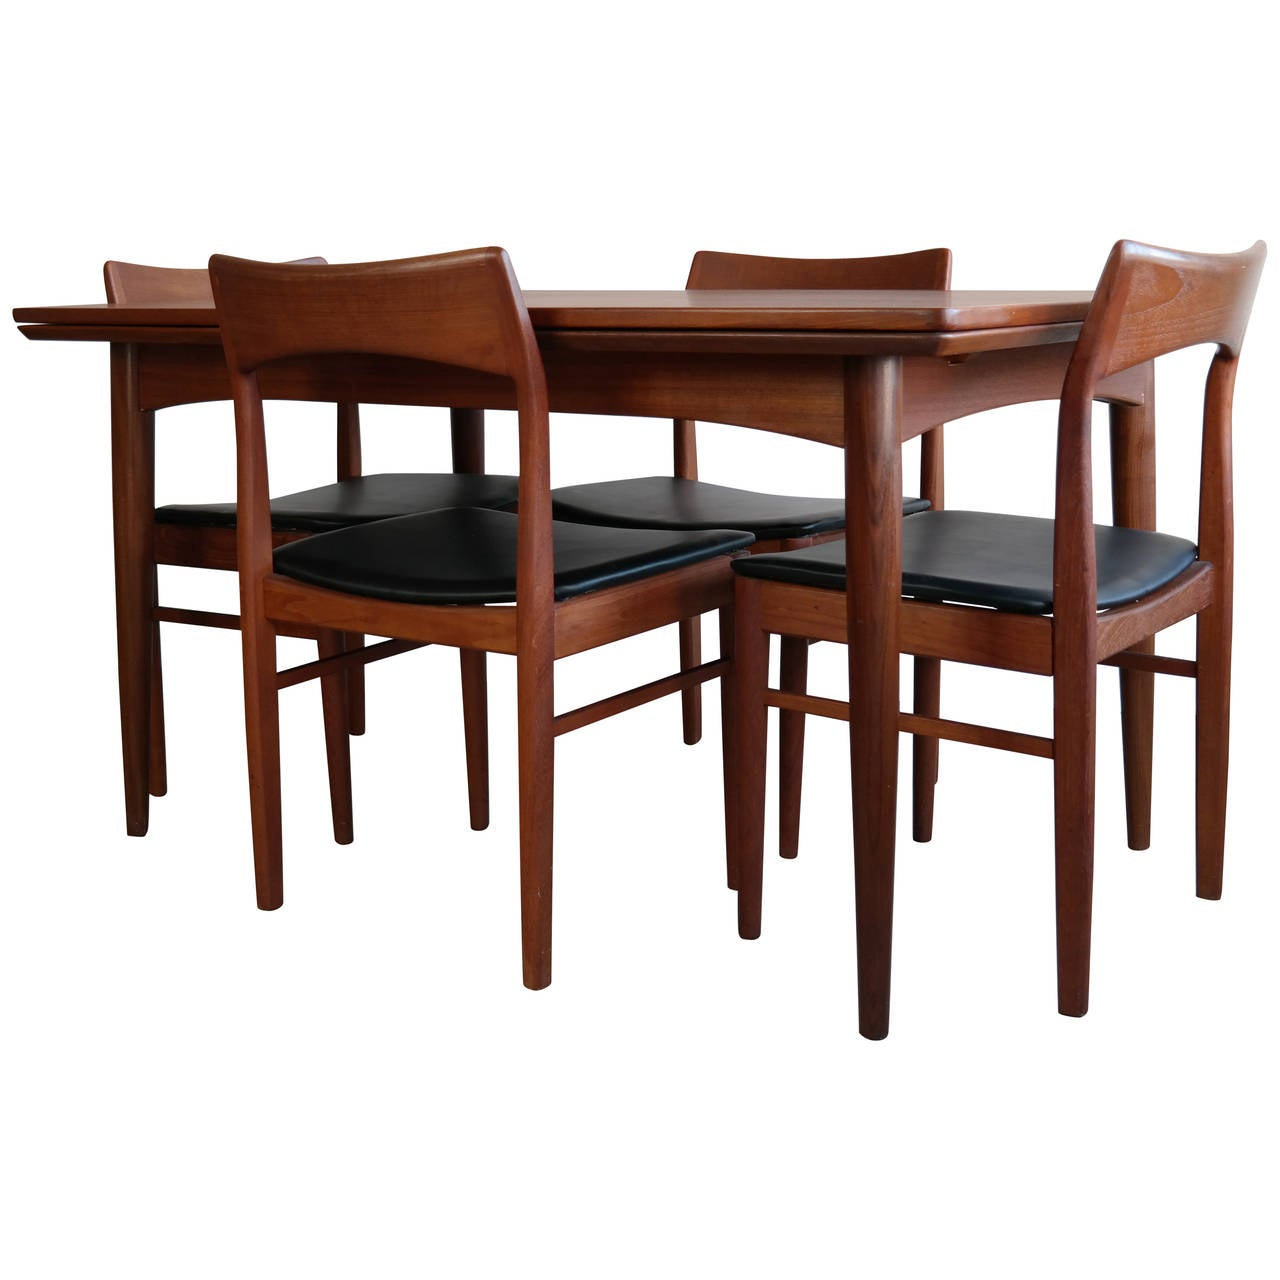 Danish modern dining set in teak at 1stdibs for New dining room sets